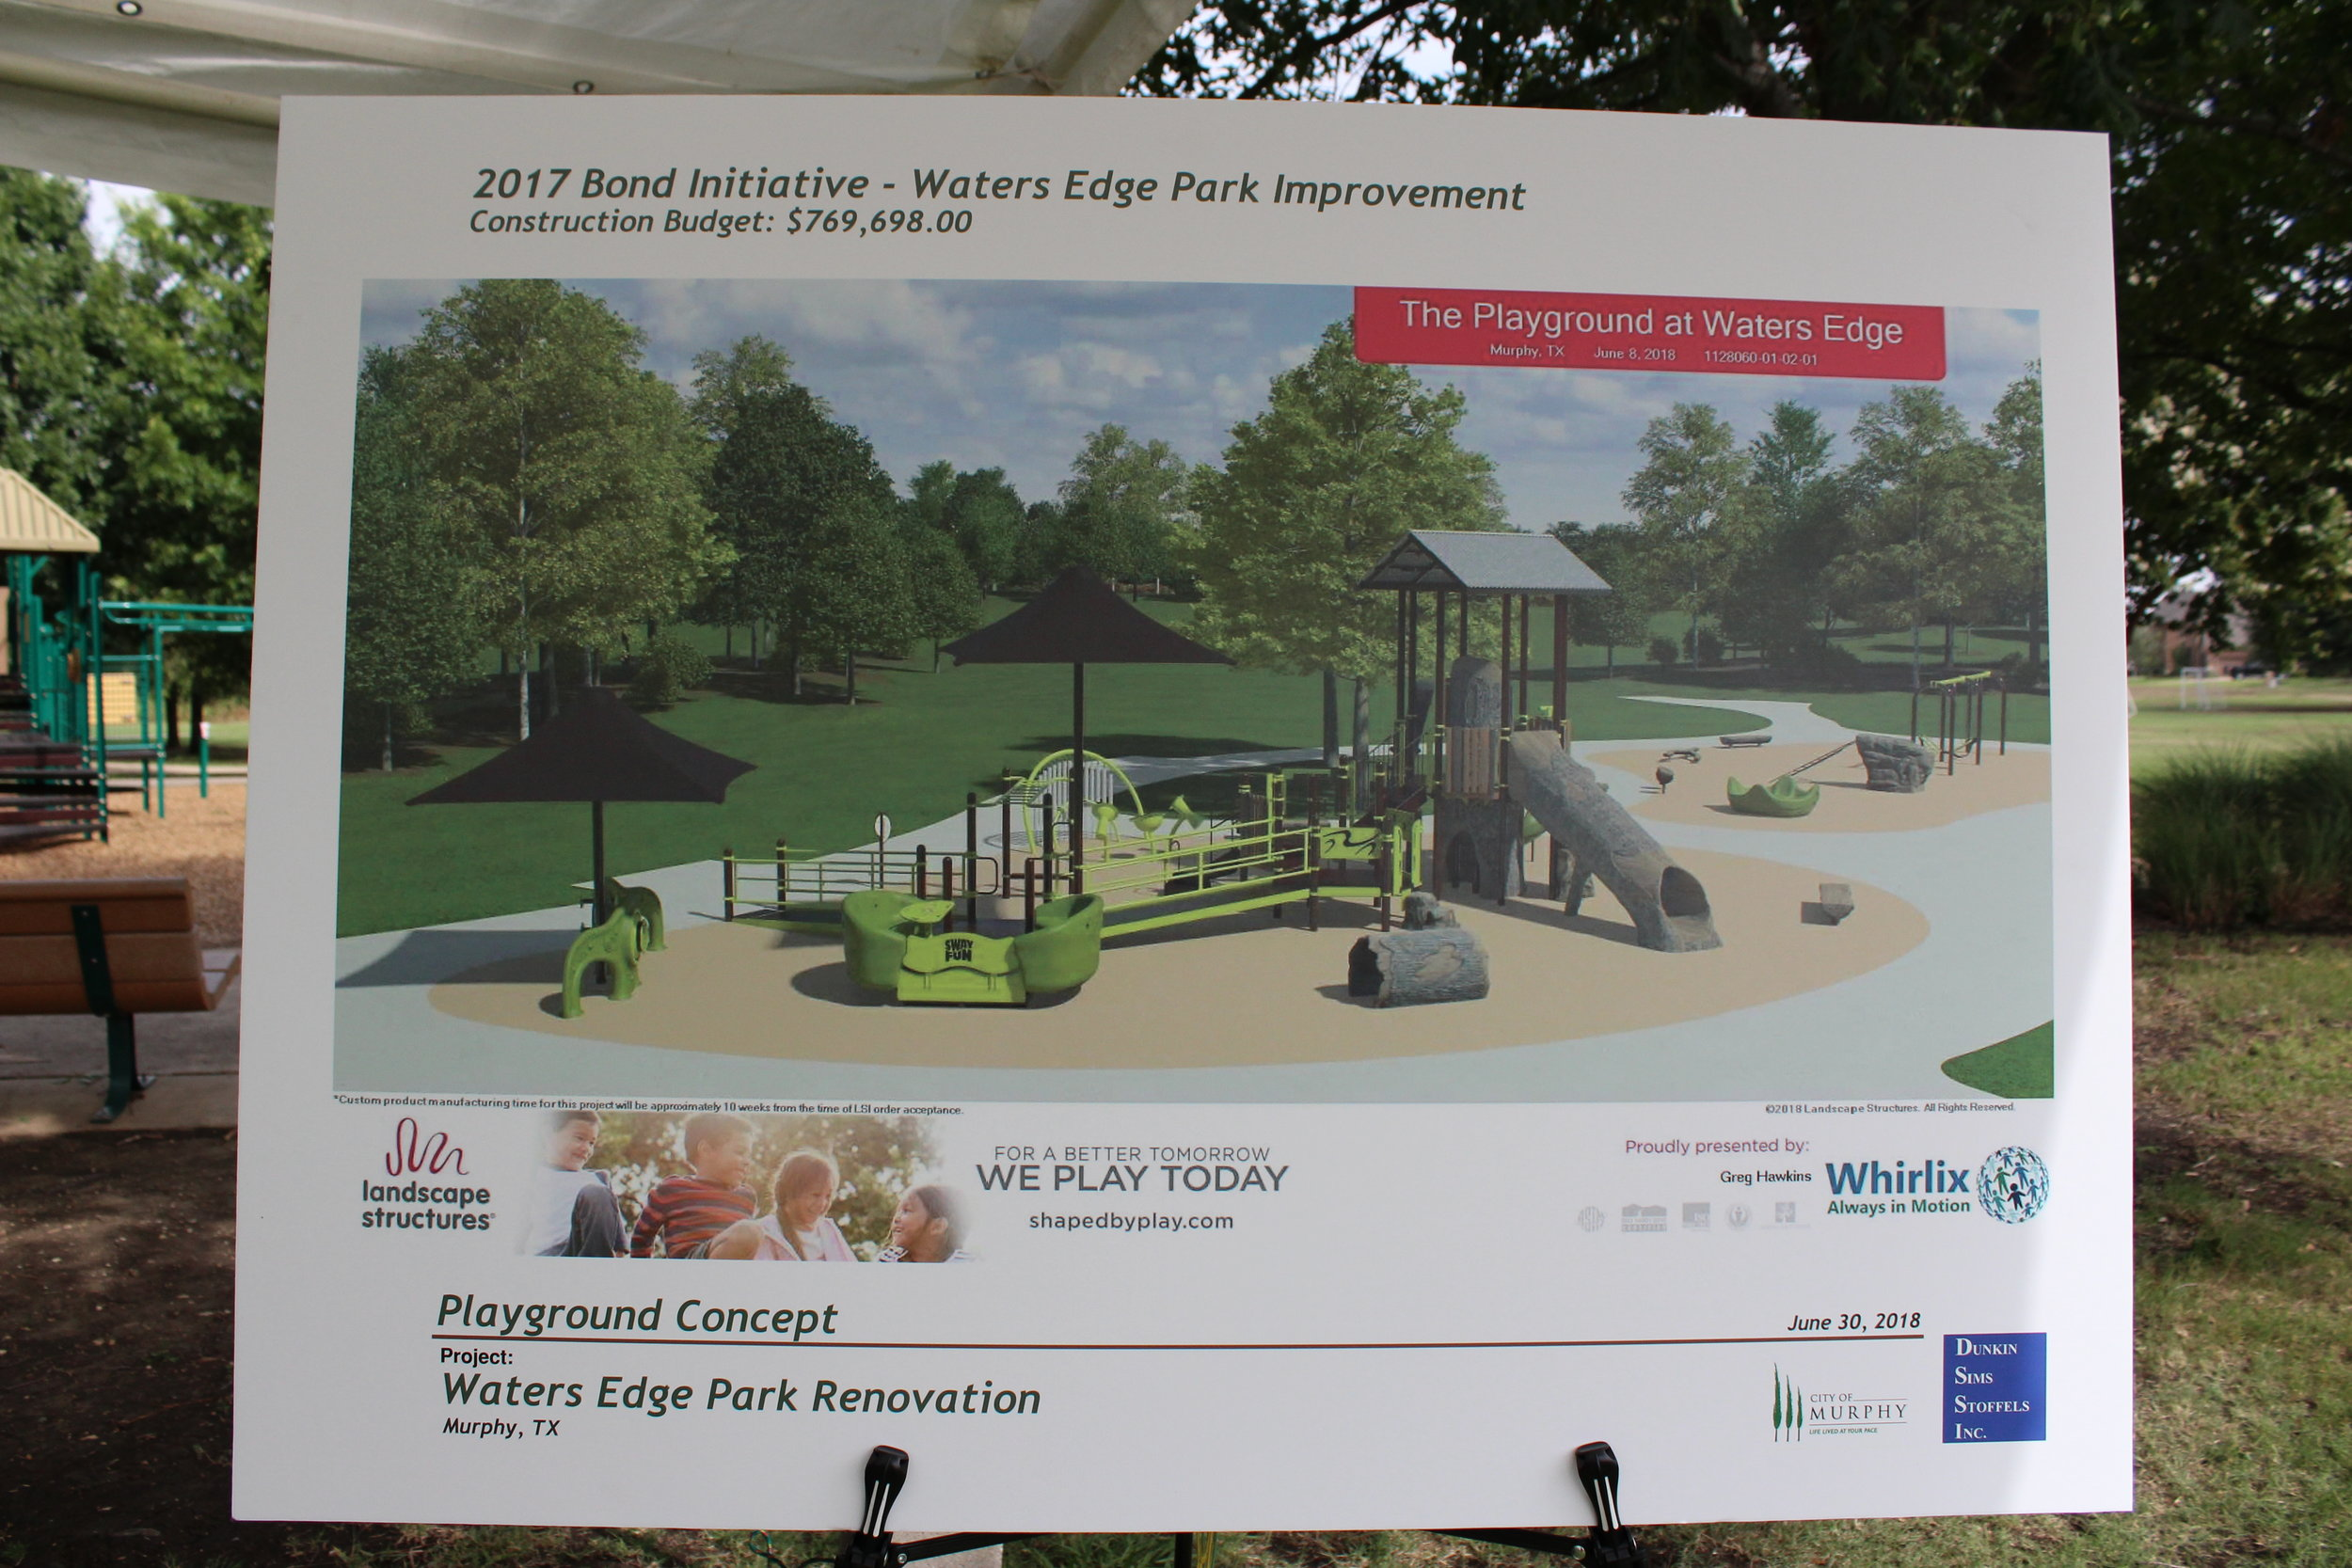 A playground concept for Waters Edge Park presented at the public outreach meeting.